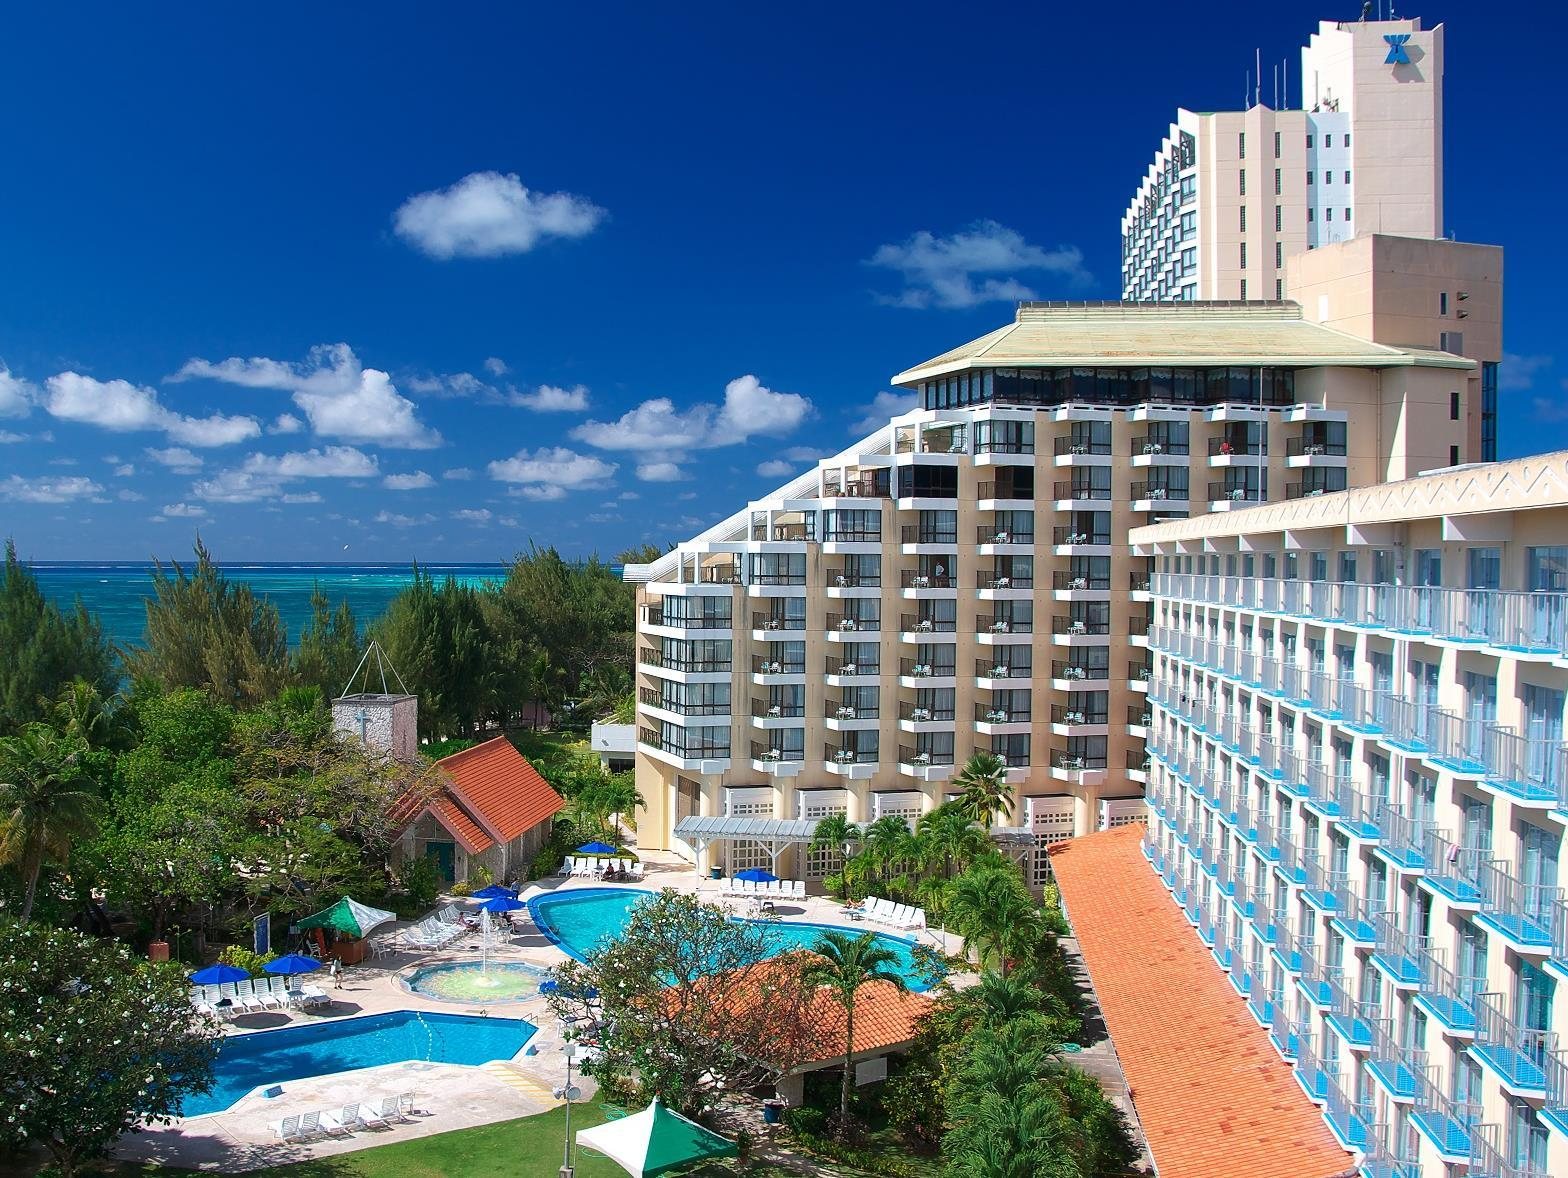 Grandvrio Resort Saipan - Hotels and Accommodation in Northern Mariana Islands, Pacific Ocean And Australia